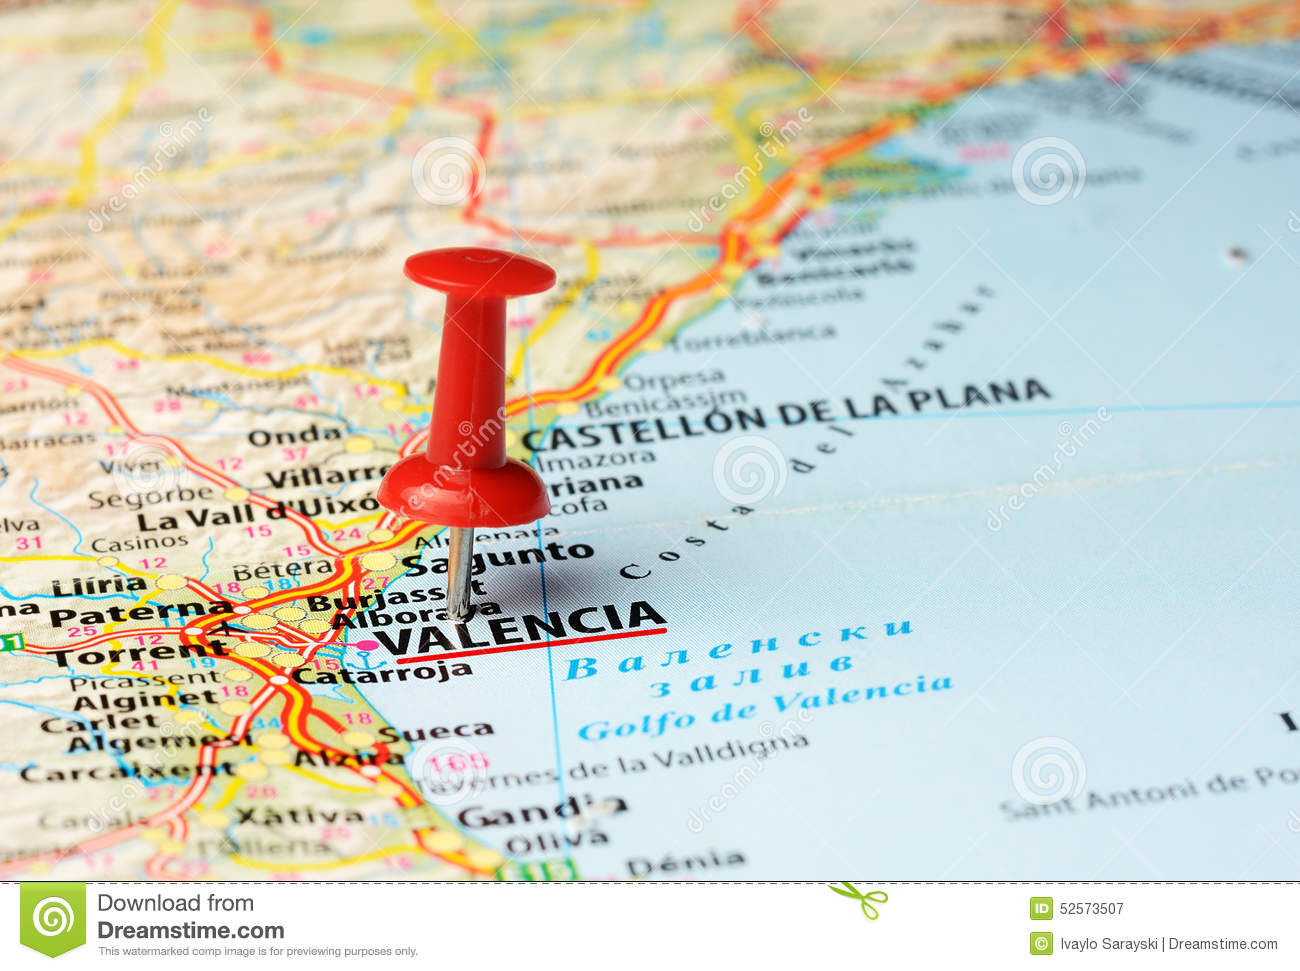 Map Of Spain Valencia.Valencia Spain Map Stock Image Image Of Pushpin Country 52573507